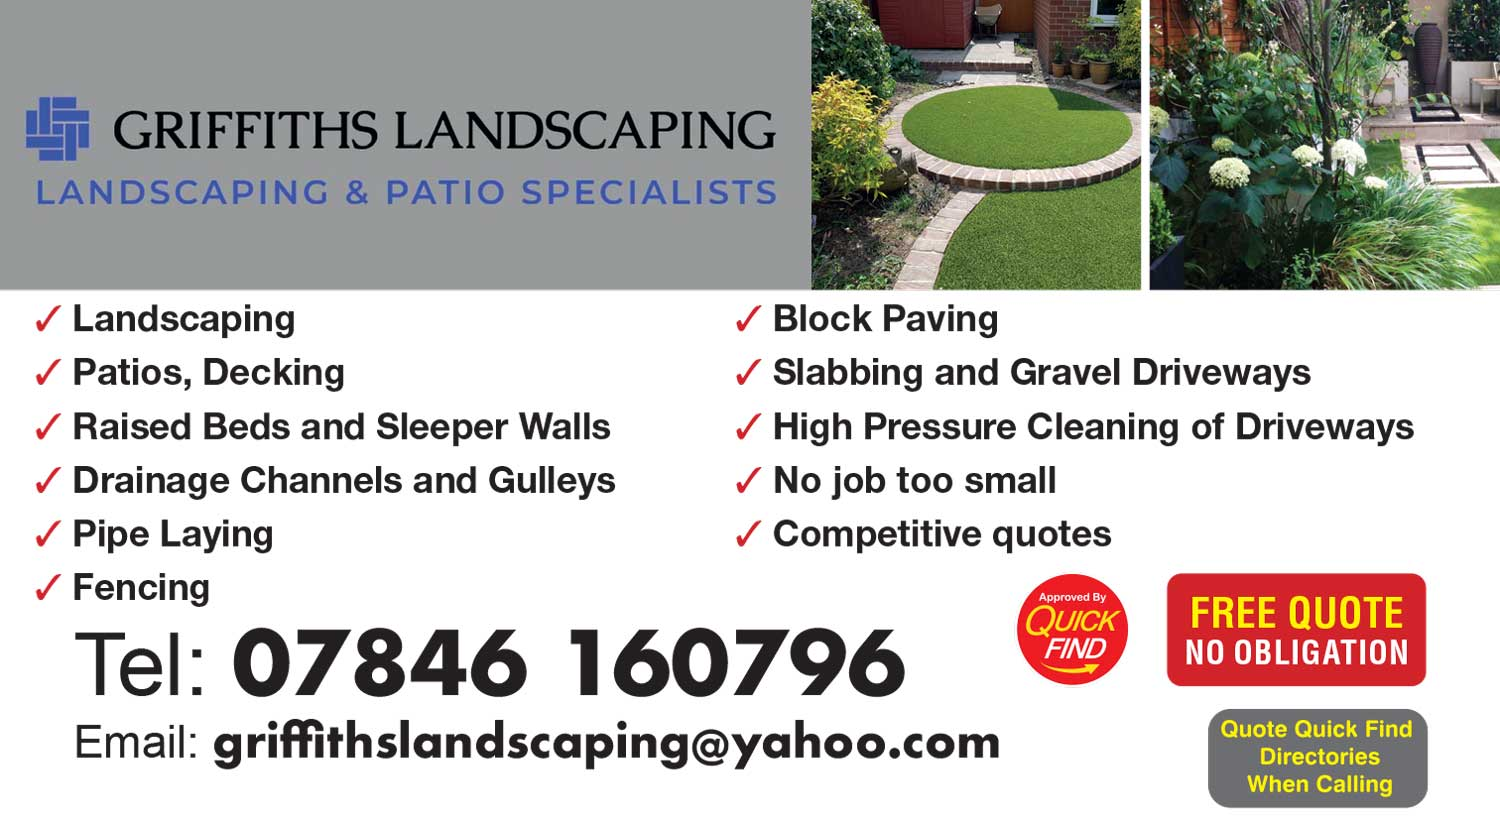 Griffiths Landscaping